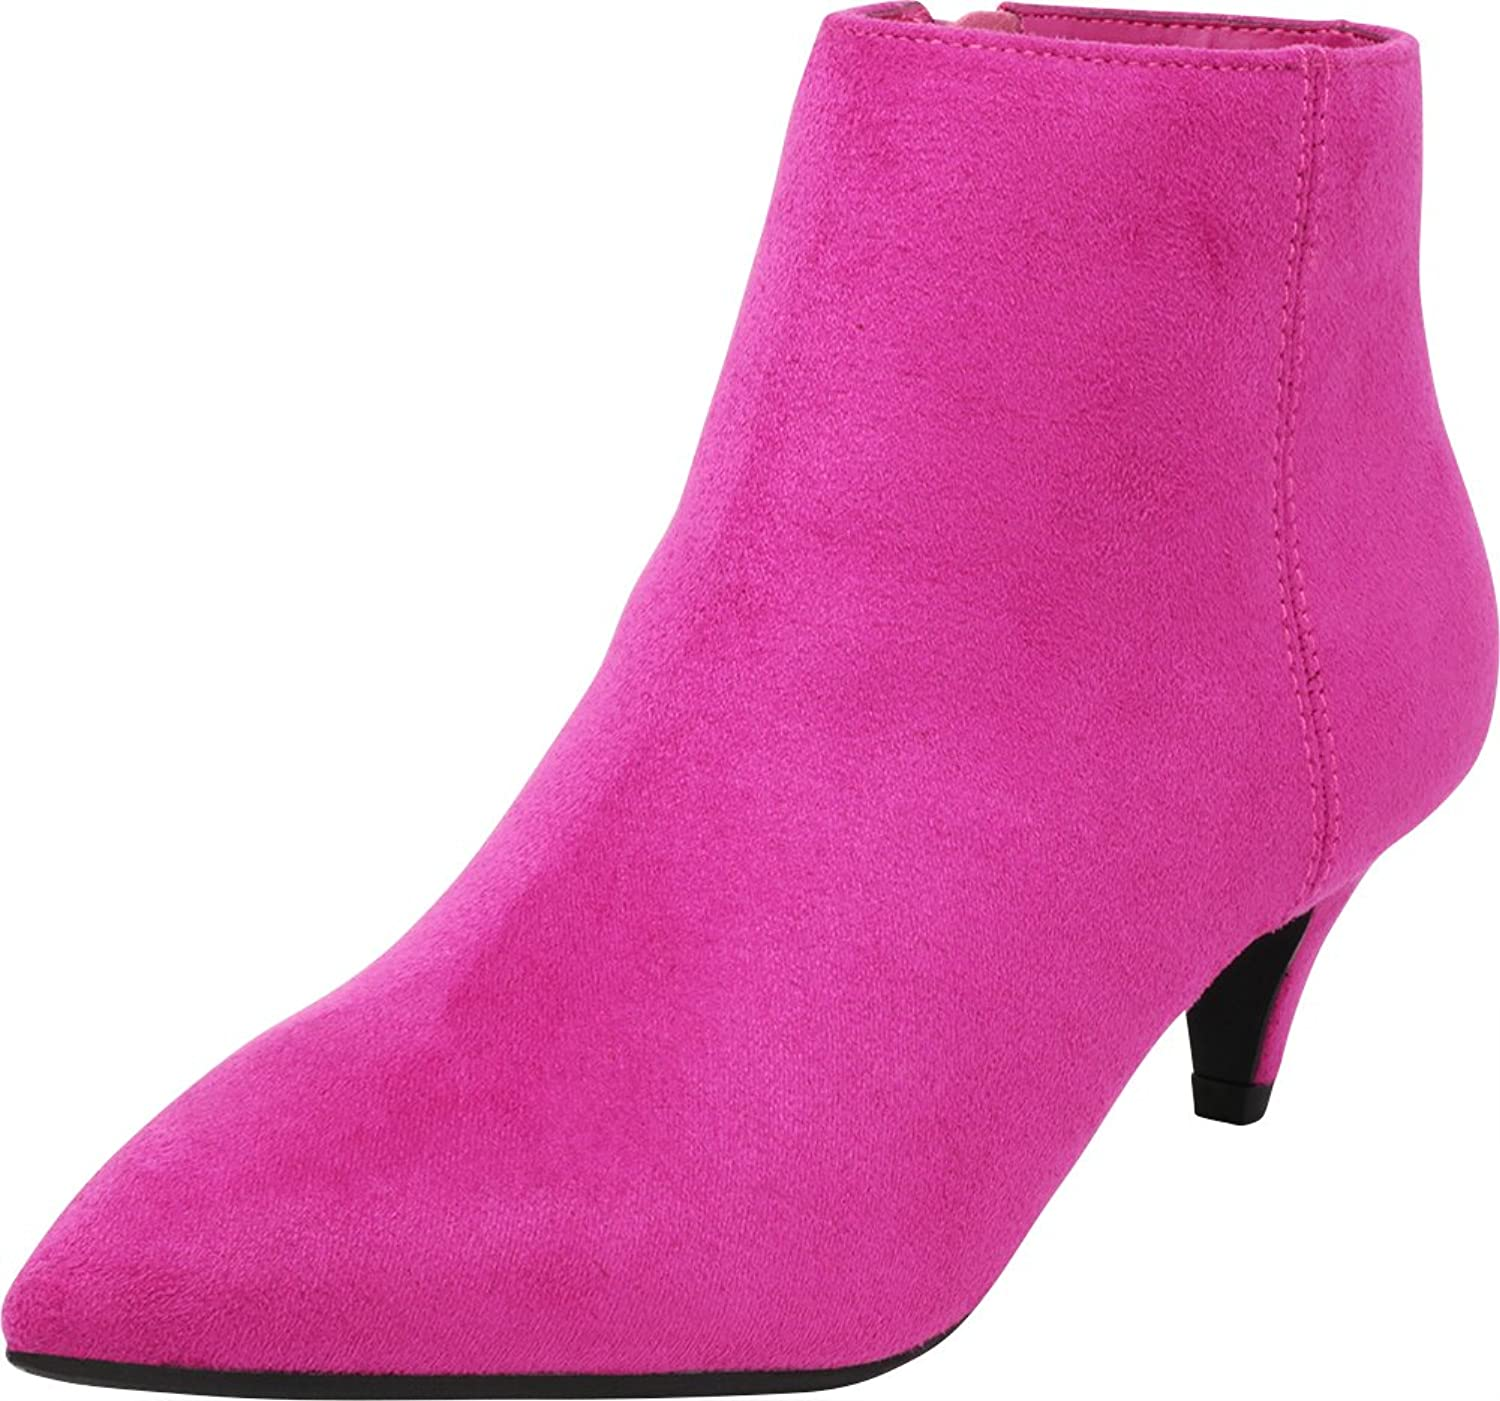 Cambridge Select Women's Closed Pointed Toe Low Heel Kitten Ankle Bootie